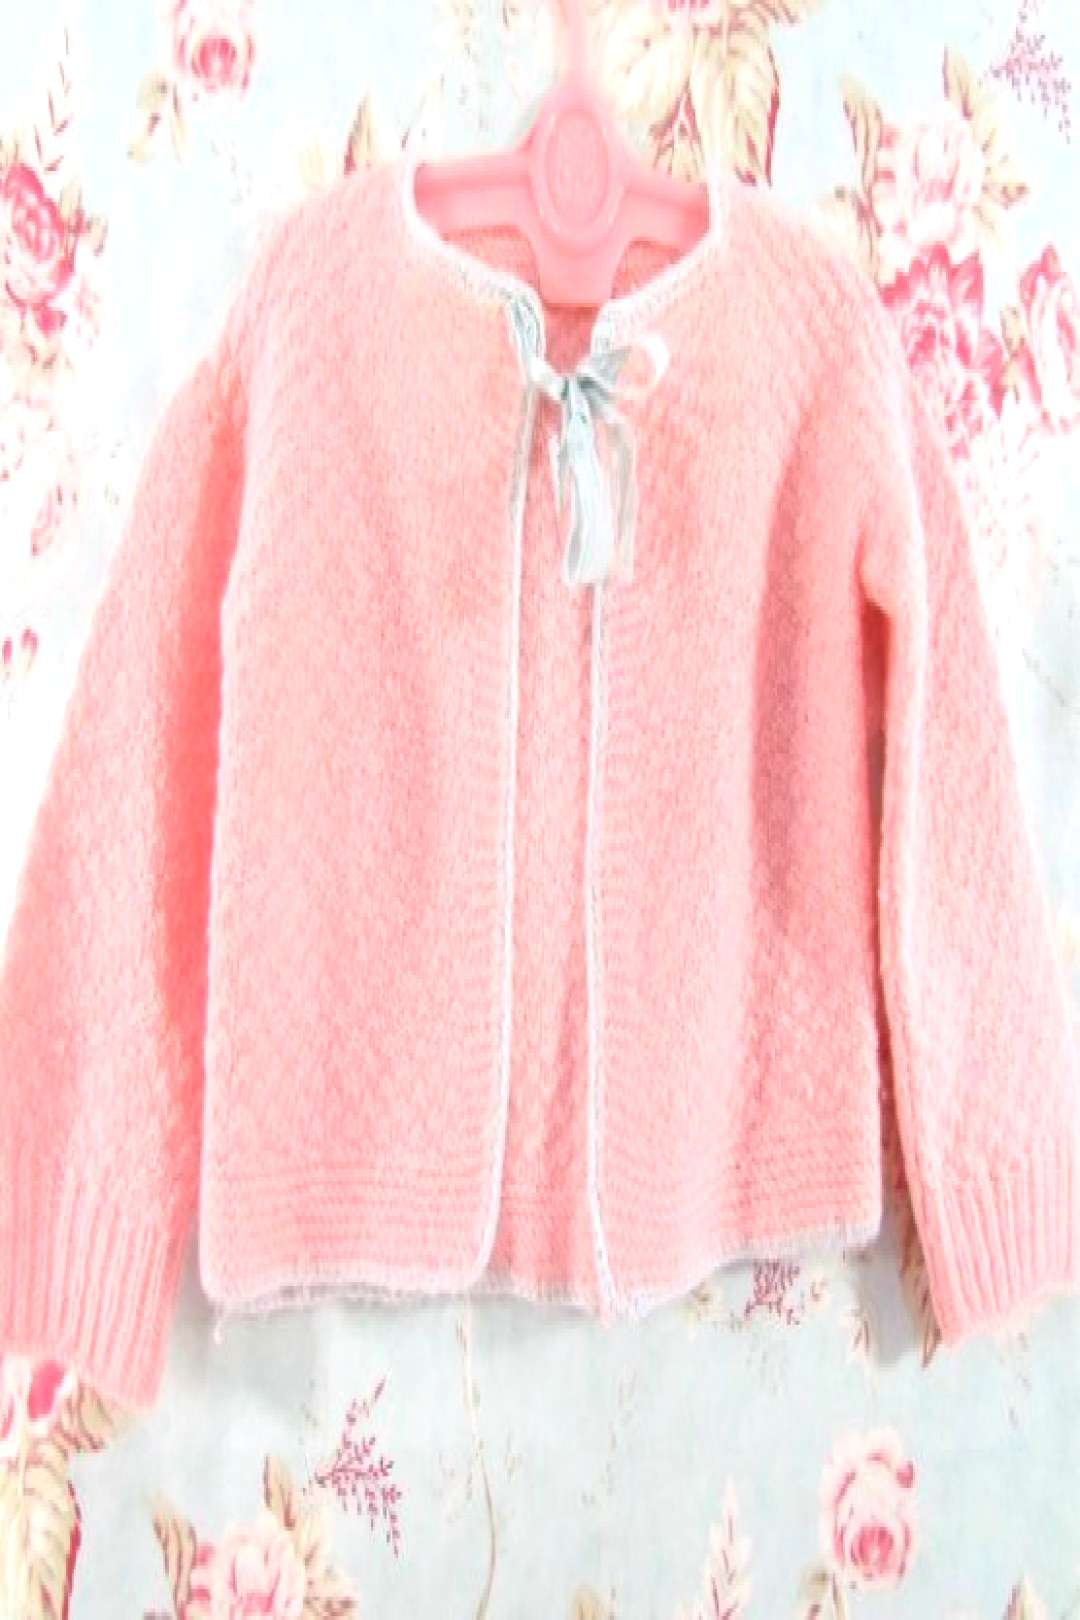 1940's Baby Sweater Knitted By Hand Pink by VintagePolkaDotcom#VintagePolkaDotcom